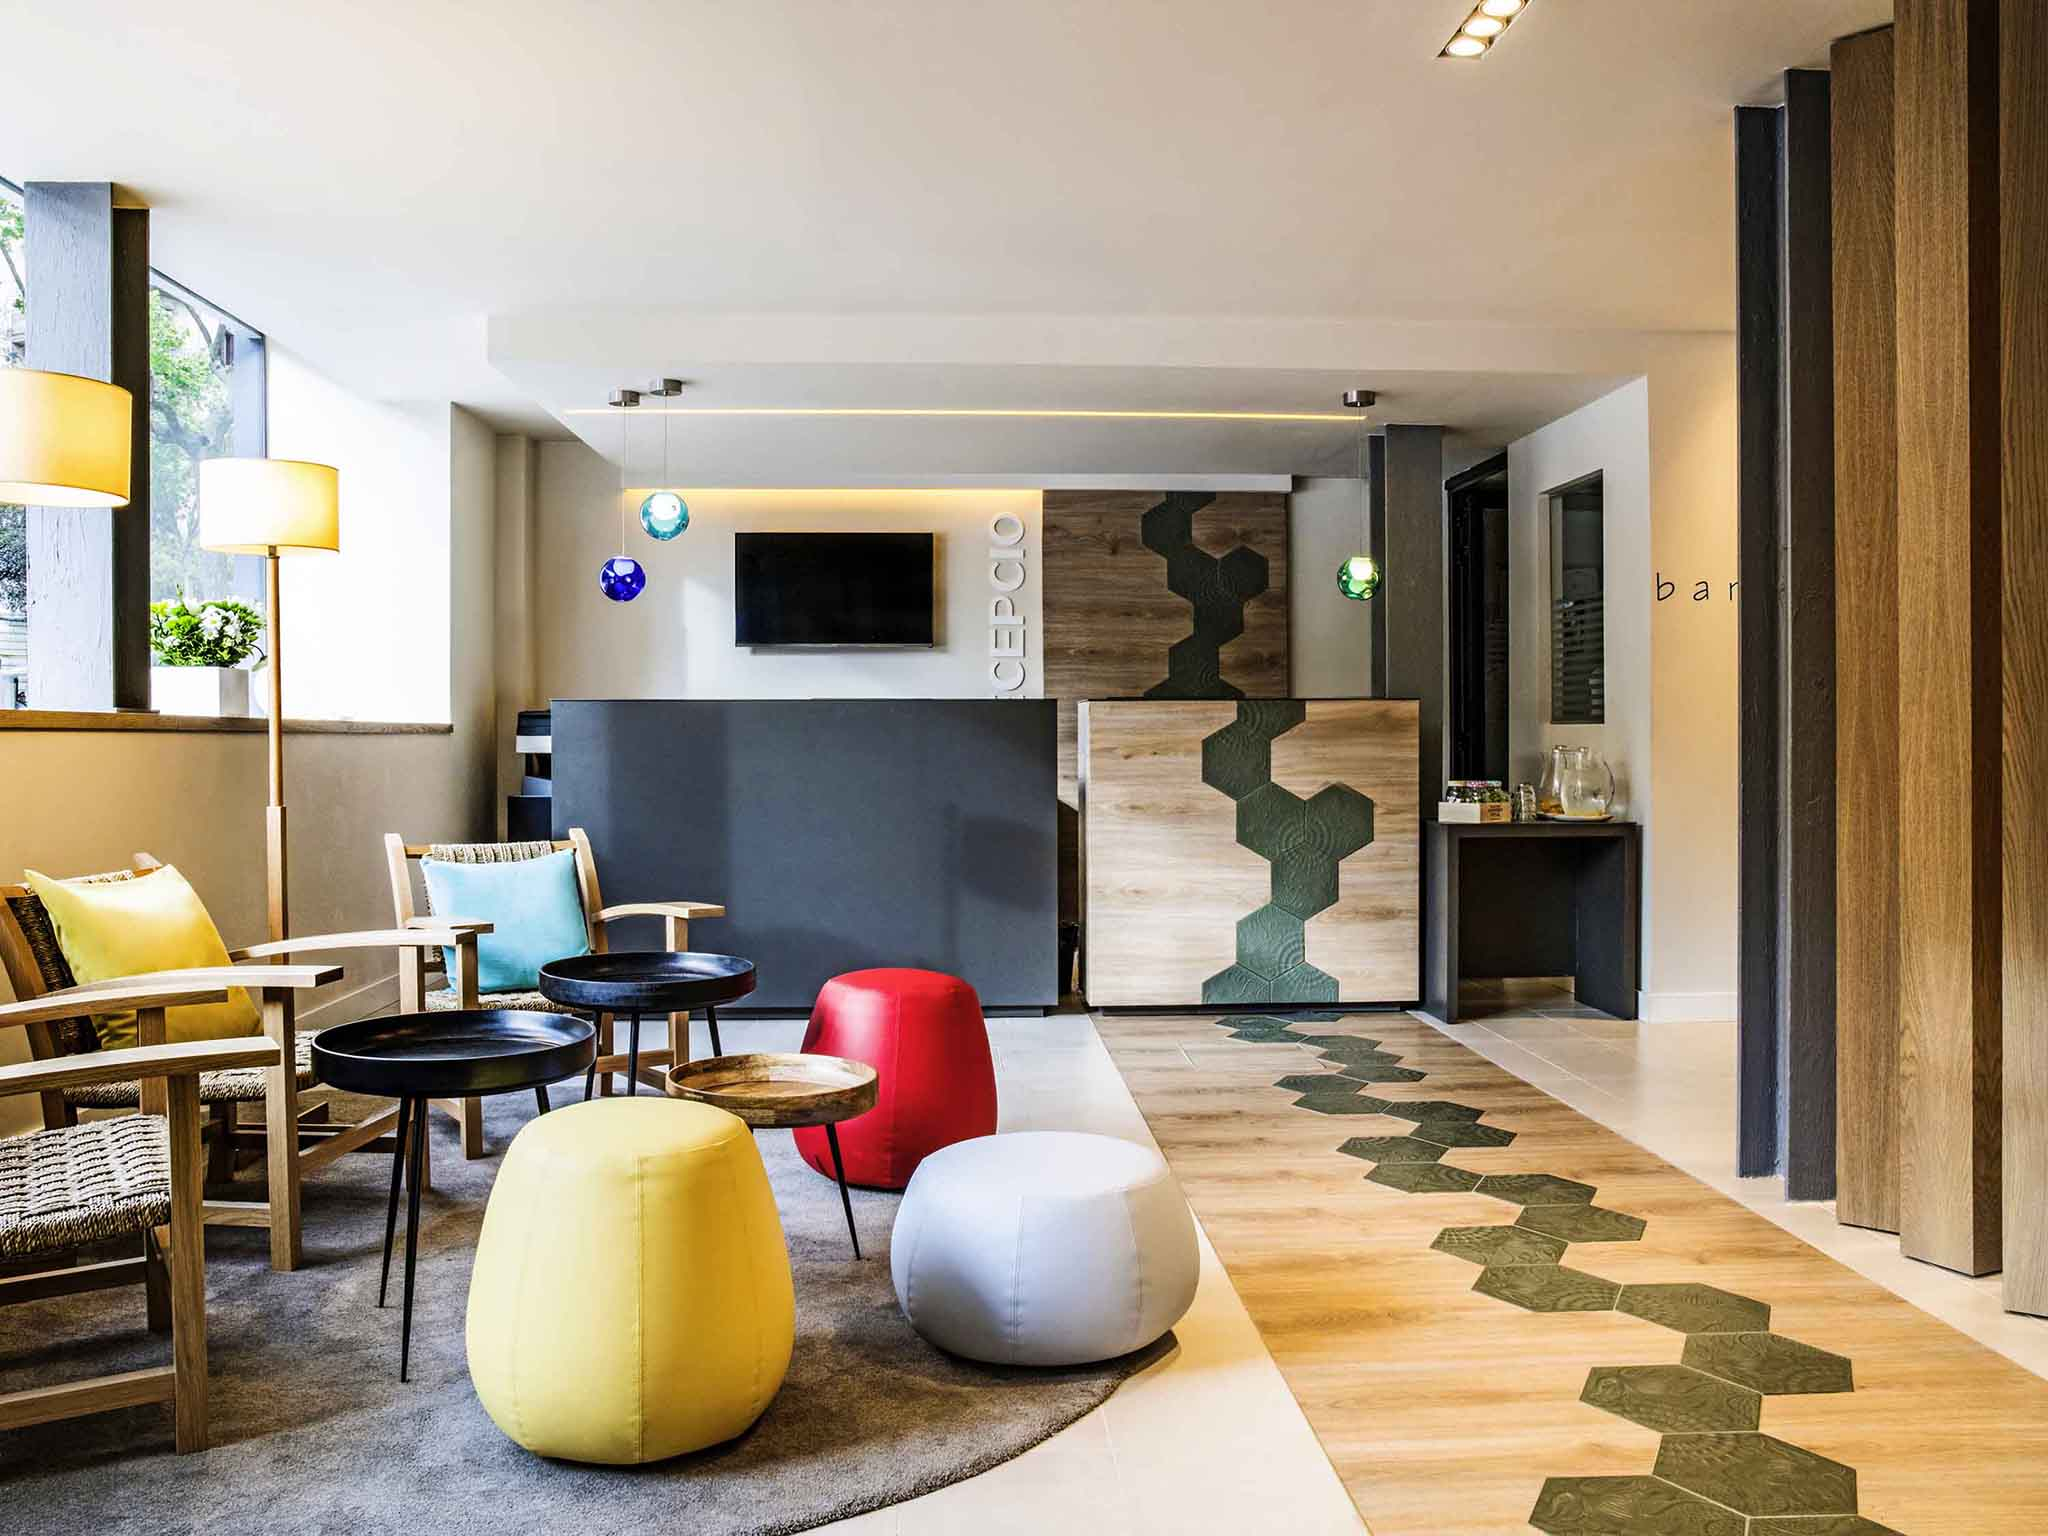 Hotel - ibis Styles Barcelona Centre